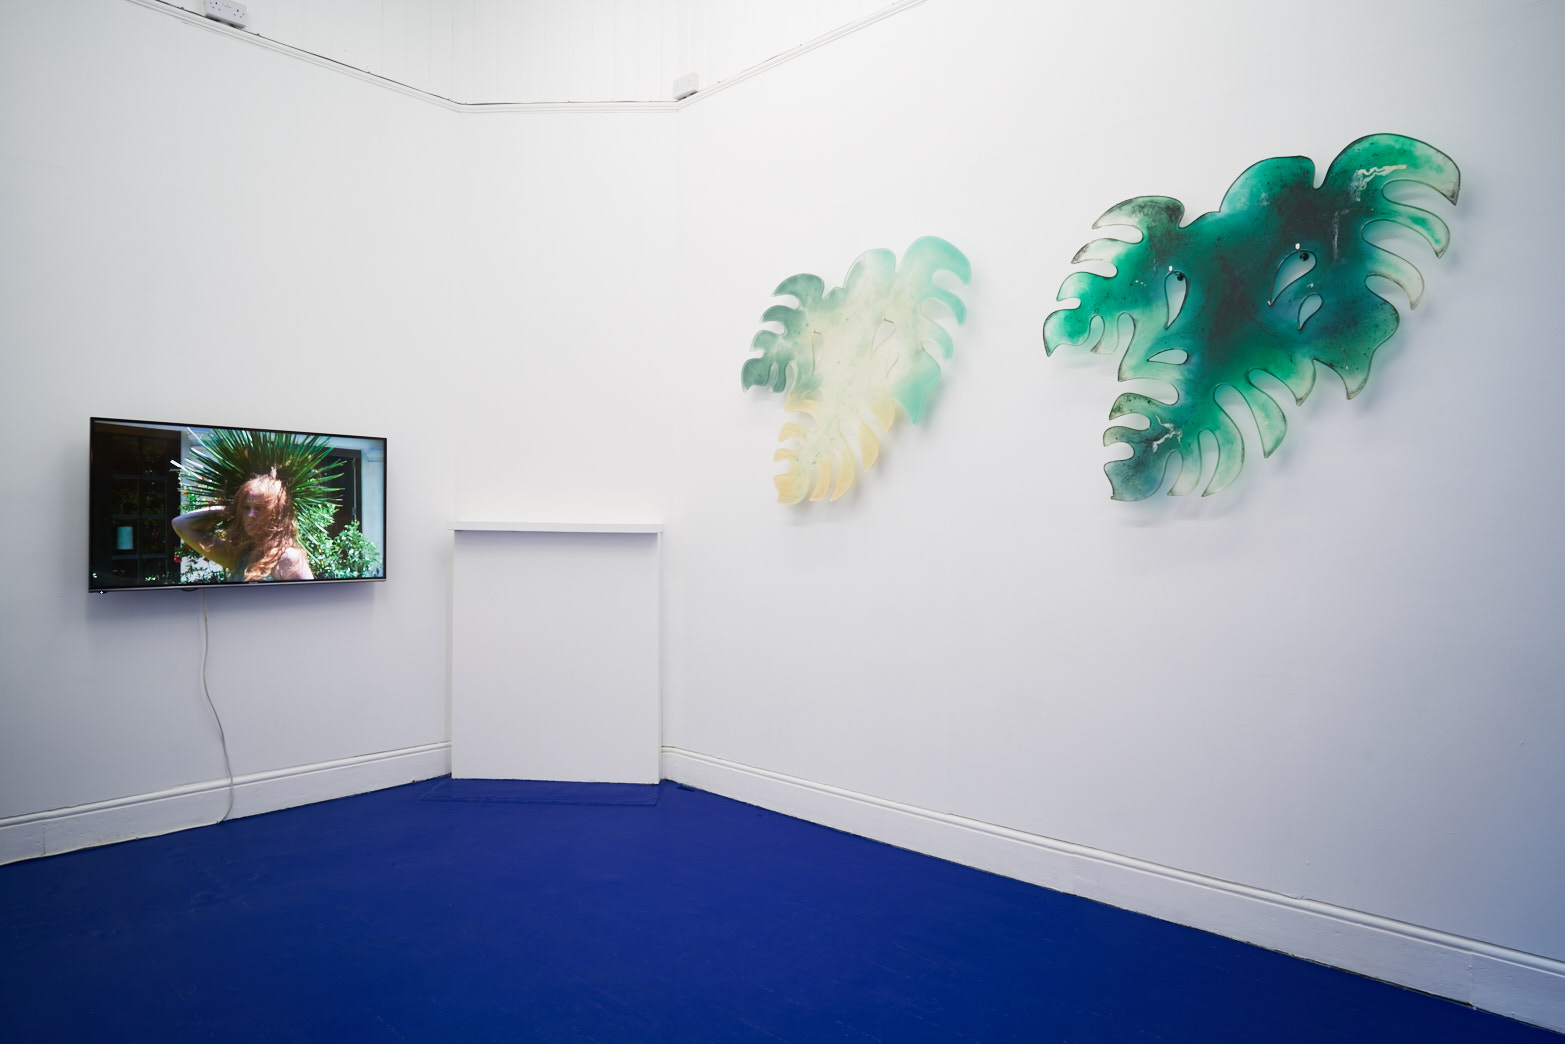 Tropical Hangover, Installation view with works by Laure Prouvost and Zuzanna Czebatul. Tenderpixel.